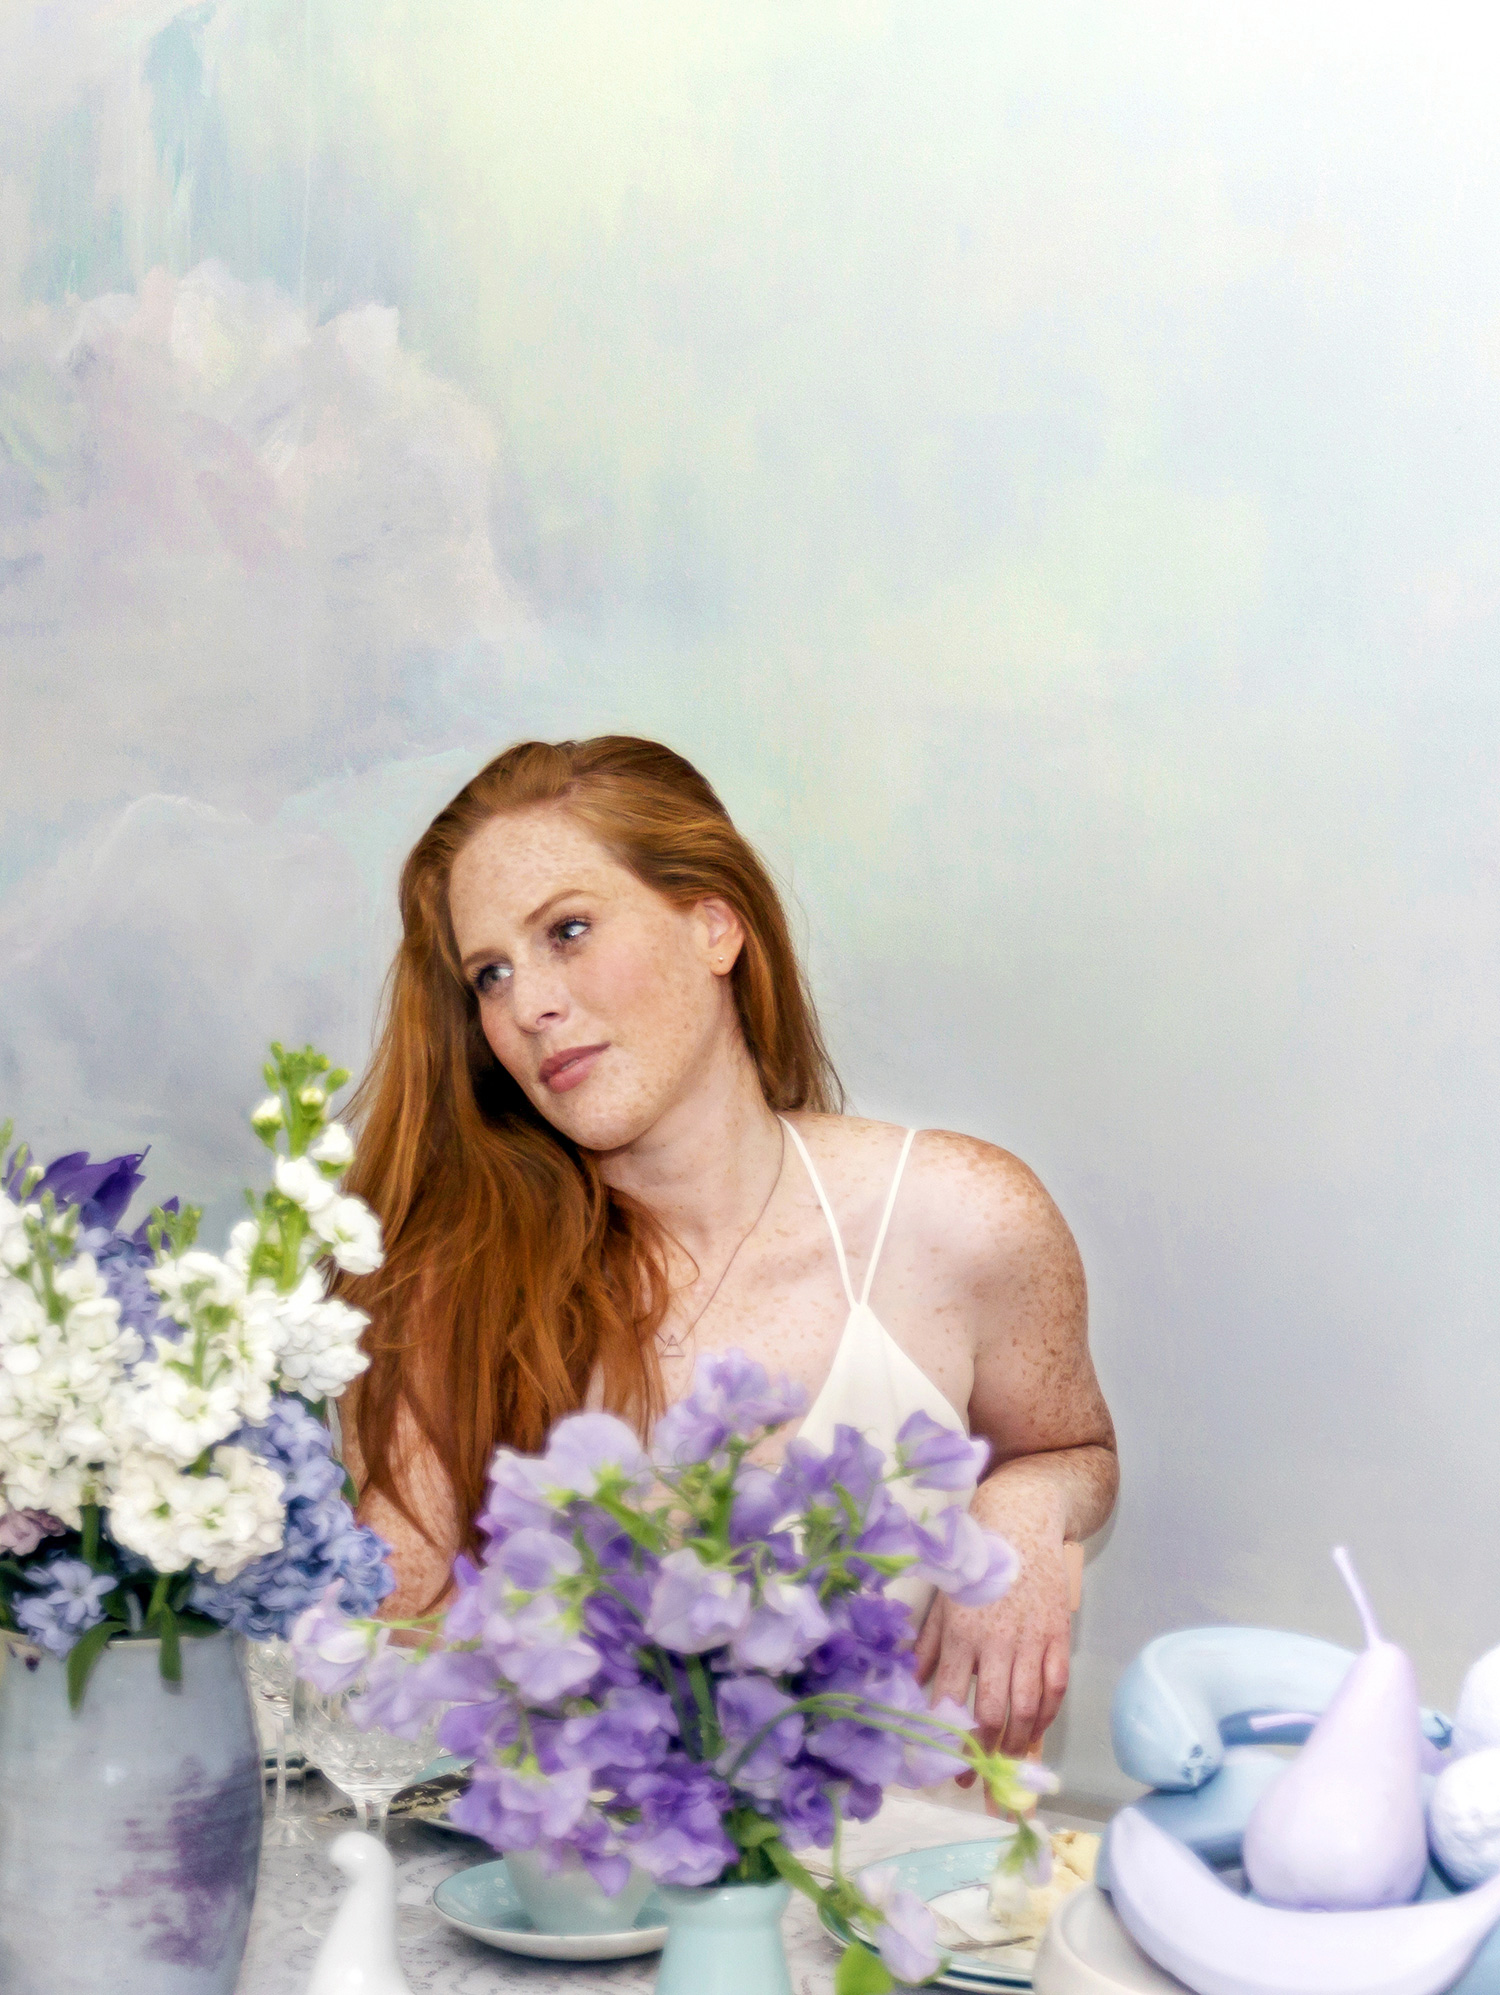 Dreamily styled dinner party in the clouds, with painted cloud mural in pastel tones, red haired model seated at table stares wistfully, the table features flowers, porcelain doves and an iced vanilla layer cake.